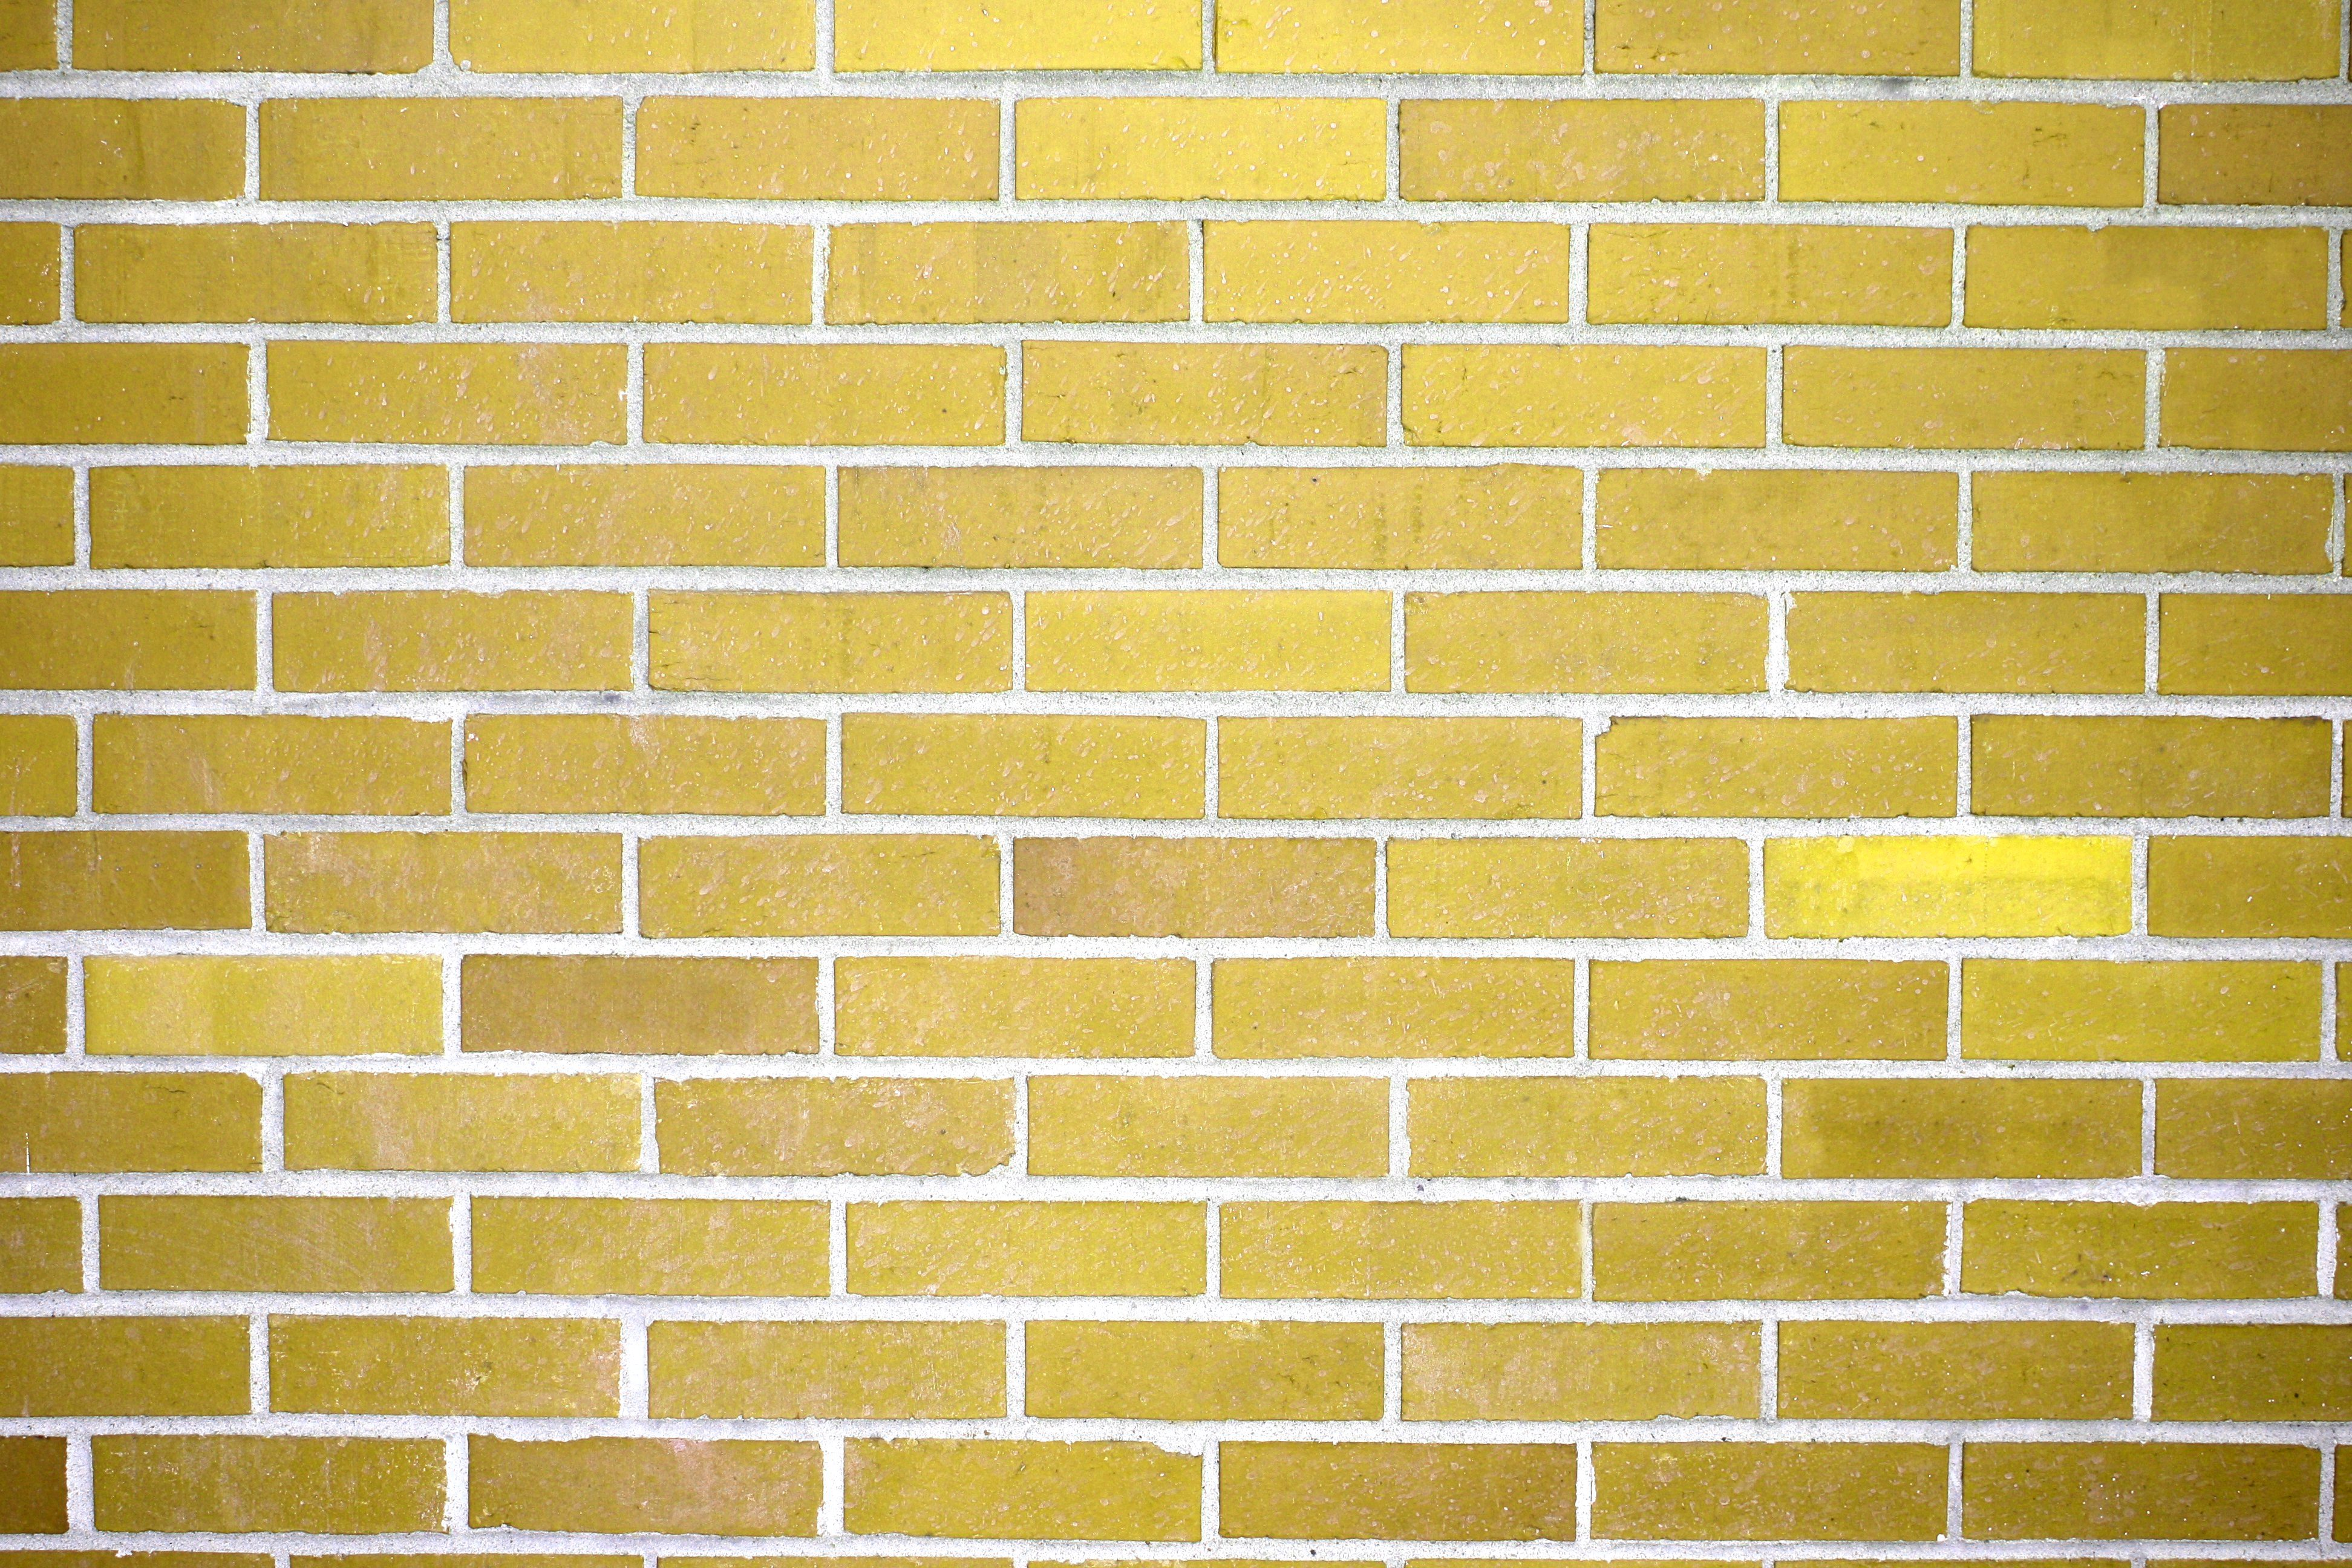 Yellow Brick Wall Texture Picture | Free Photograph | Photos Public ...